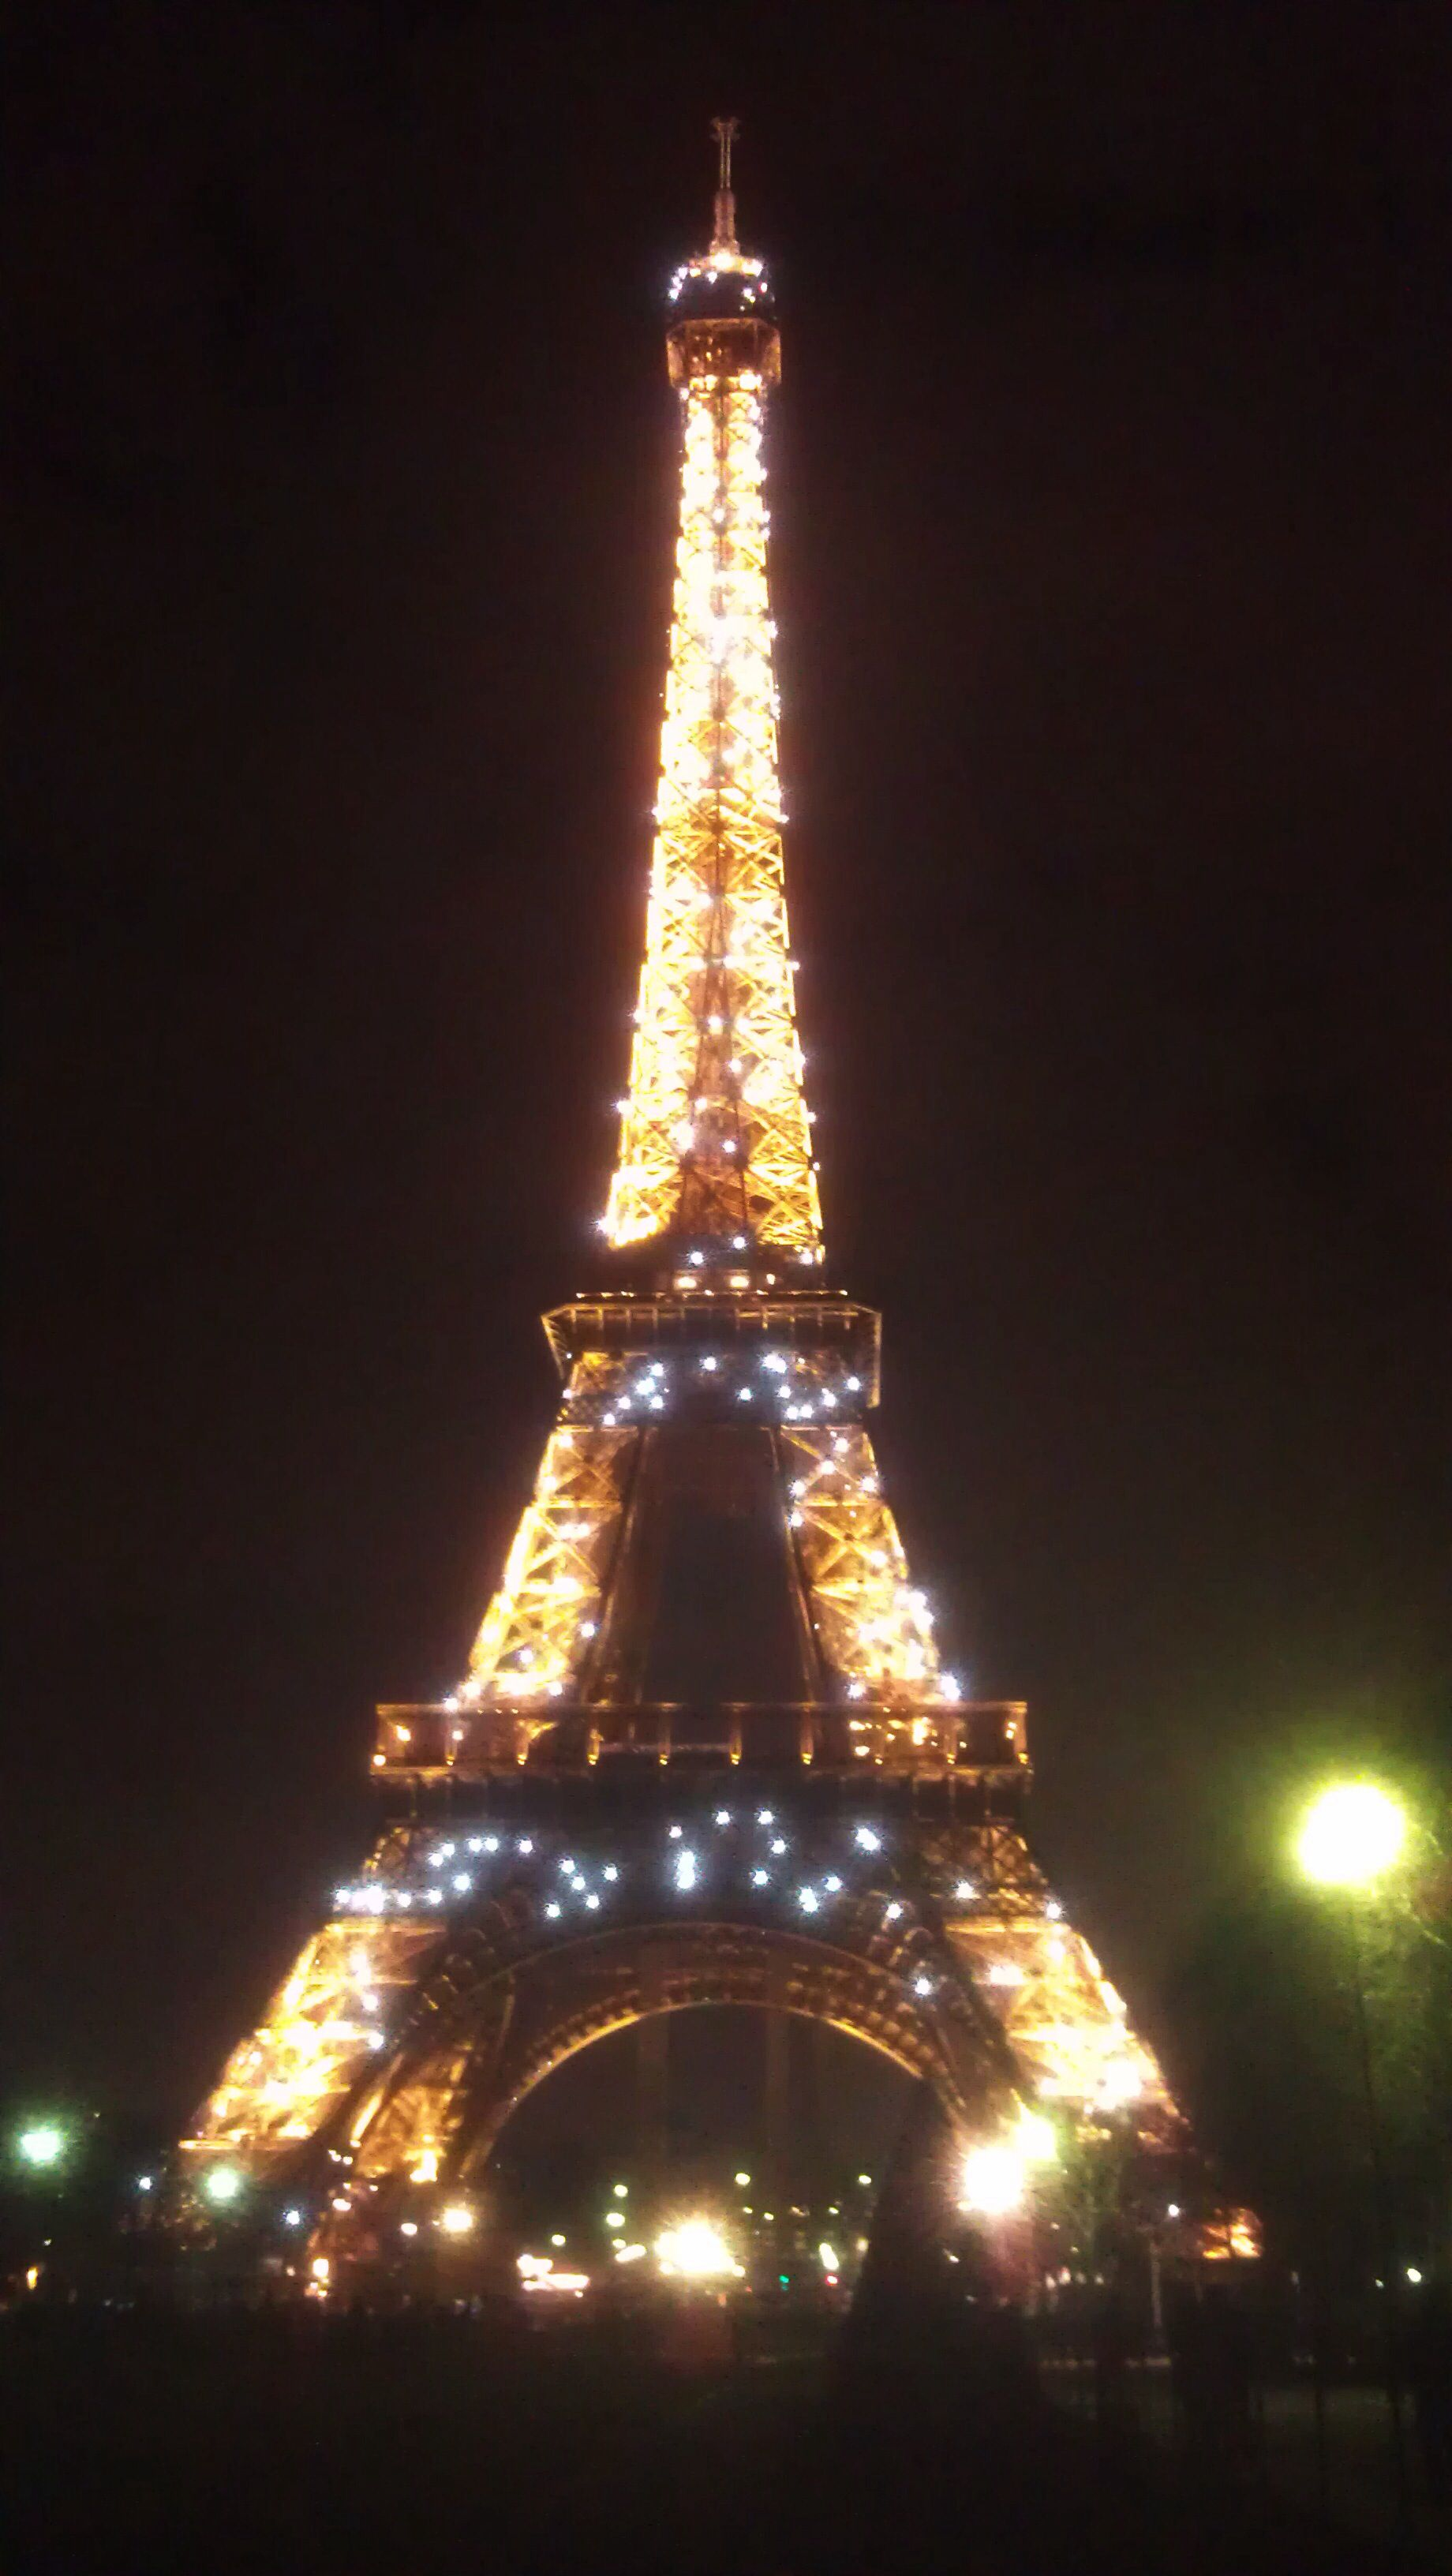 The Eiffel Tower light show at night, some people think it's tacky but as a tourist, I loved it! Made the city seem magical and full of wonder and light #paris #eiffel